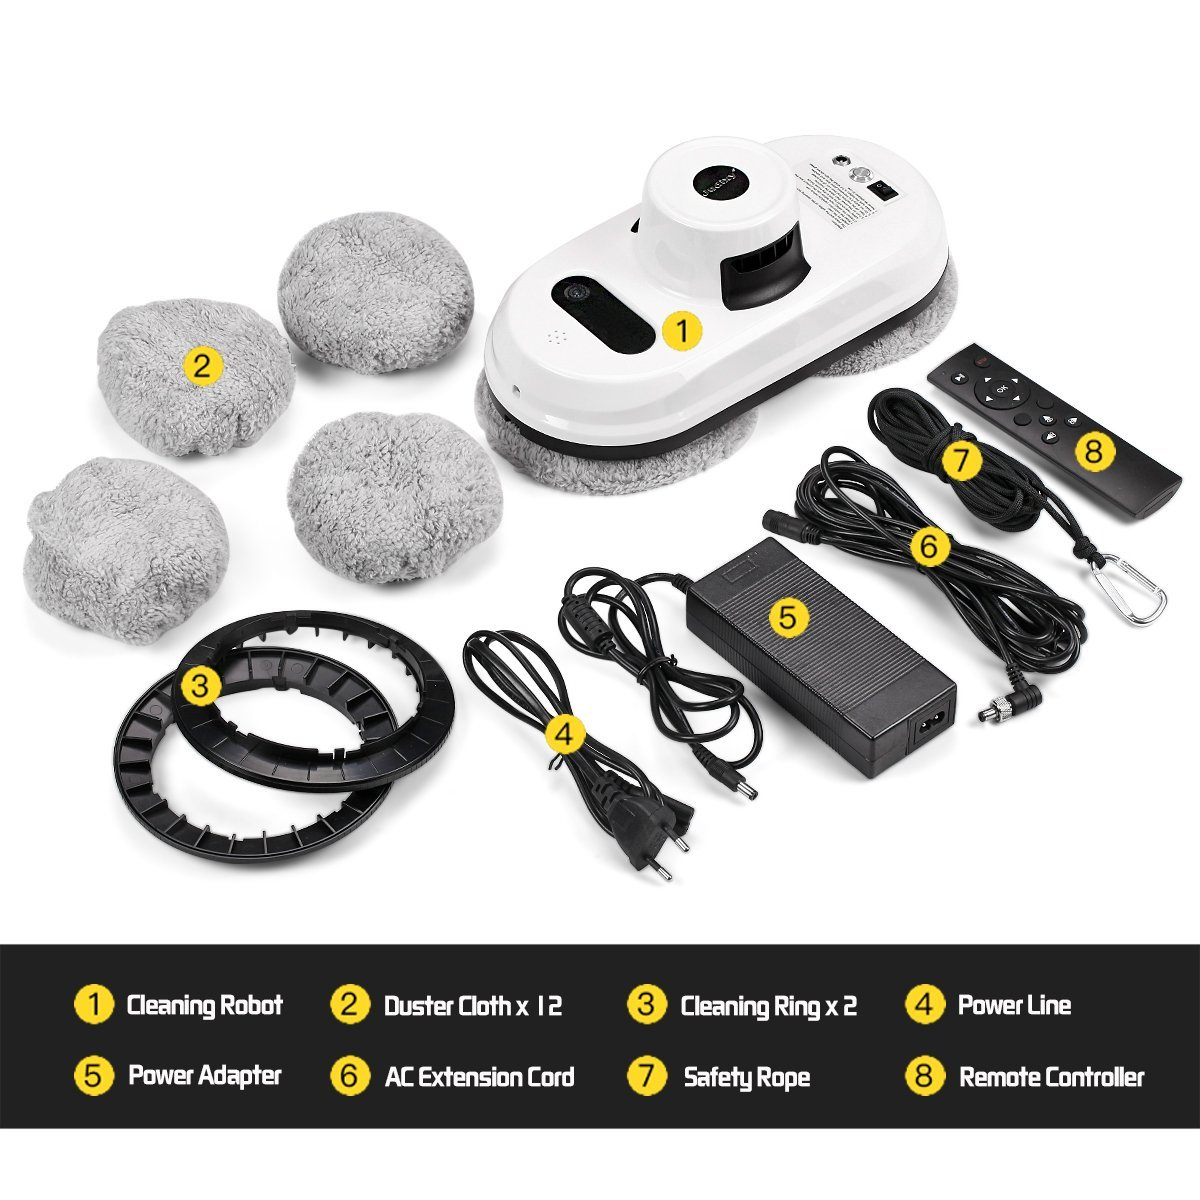 Judixy Window Cleaner Robot, Ultra-Fast Cleaning Speed for Inside and Outdoor by JUDIXY (Image #7)